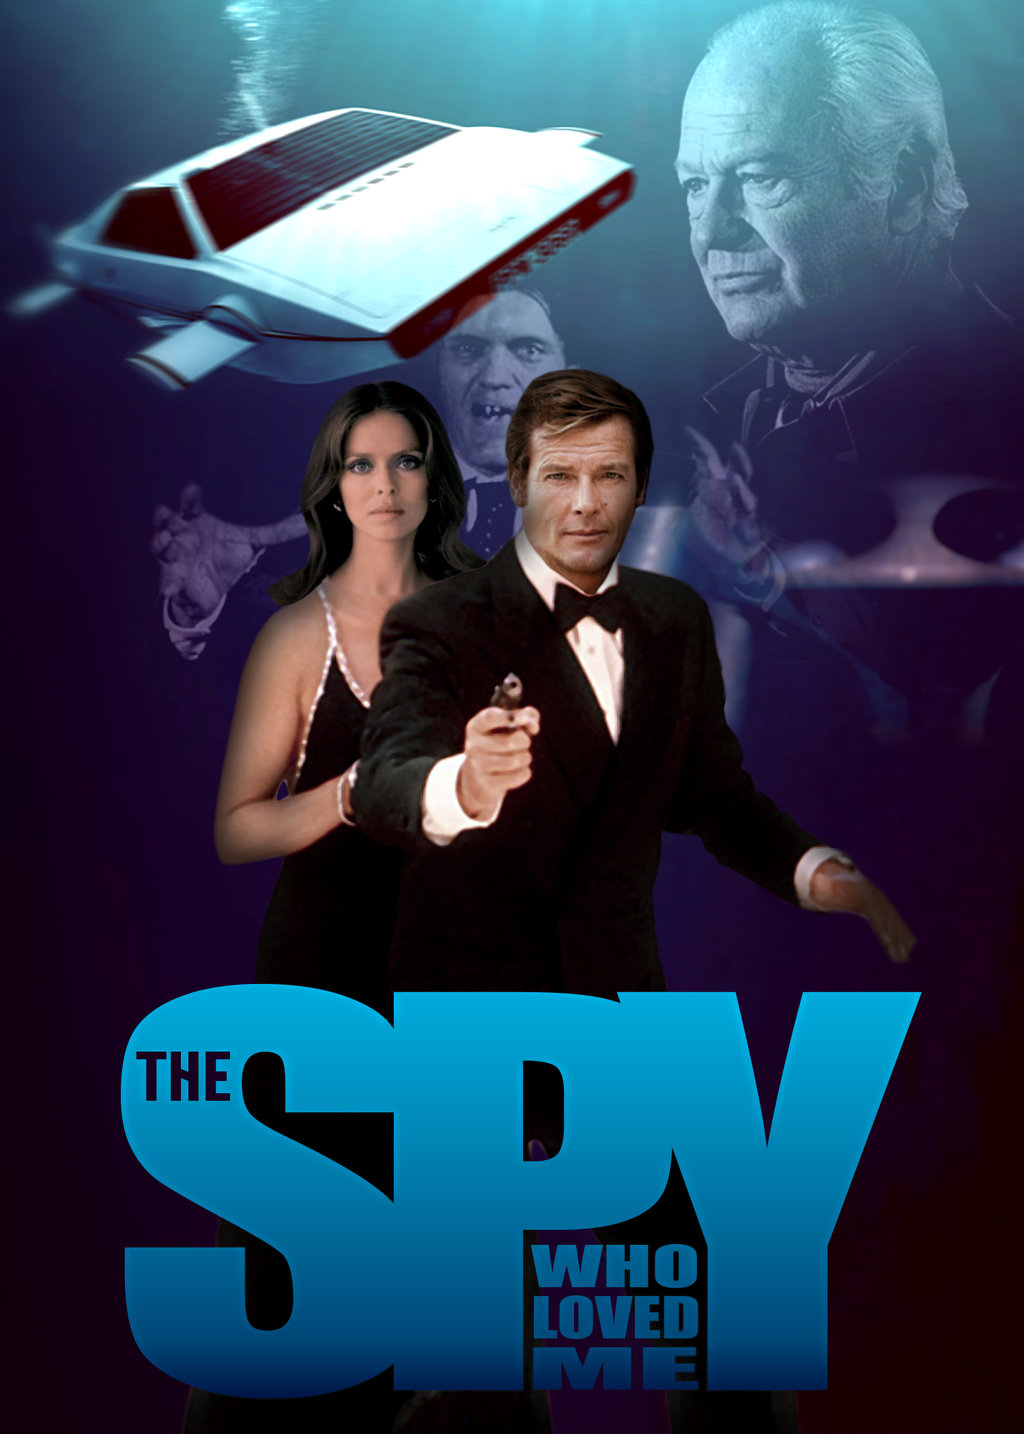 the_spy_who_loved_me_poster_by_comandercool22-d67rbfn